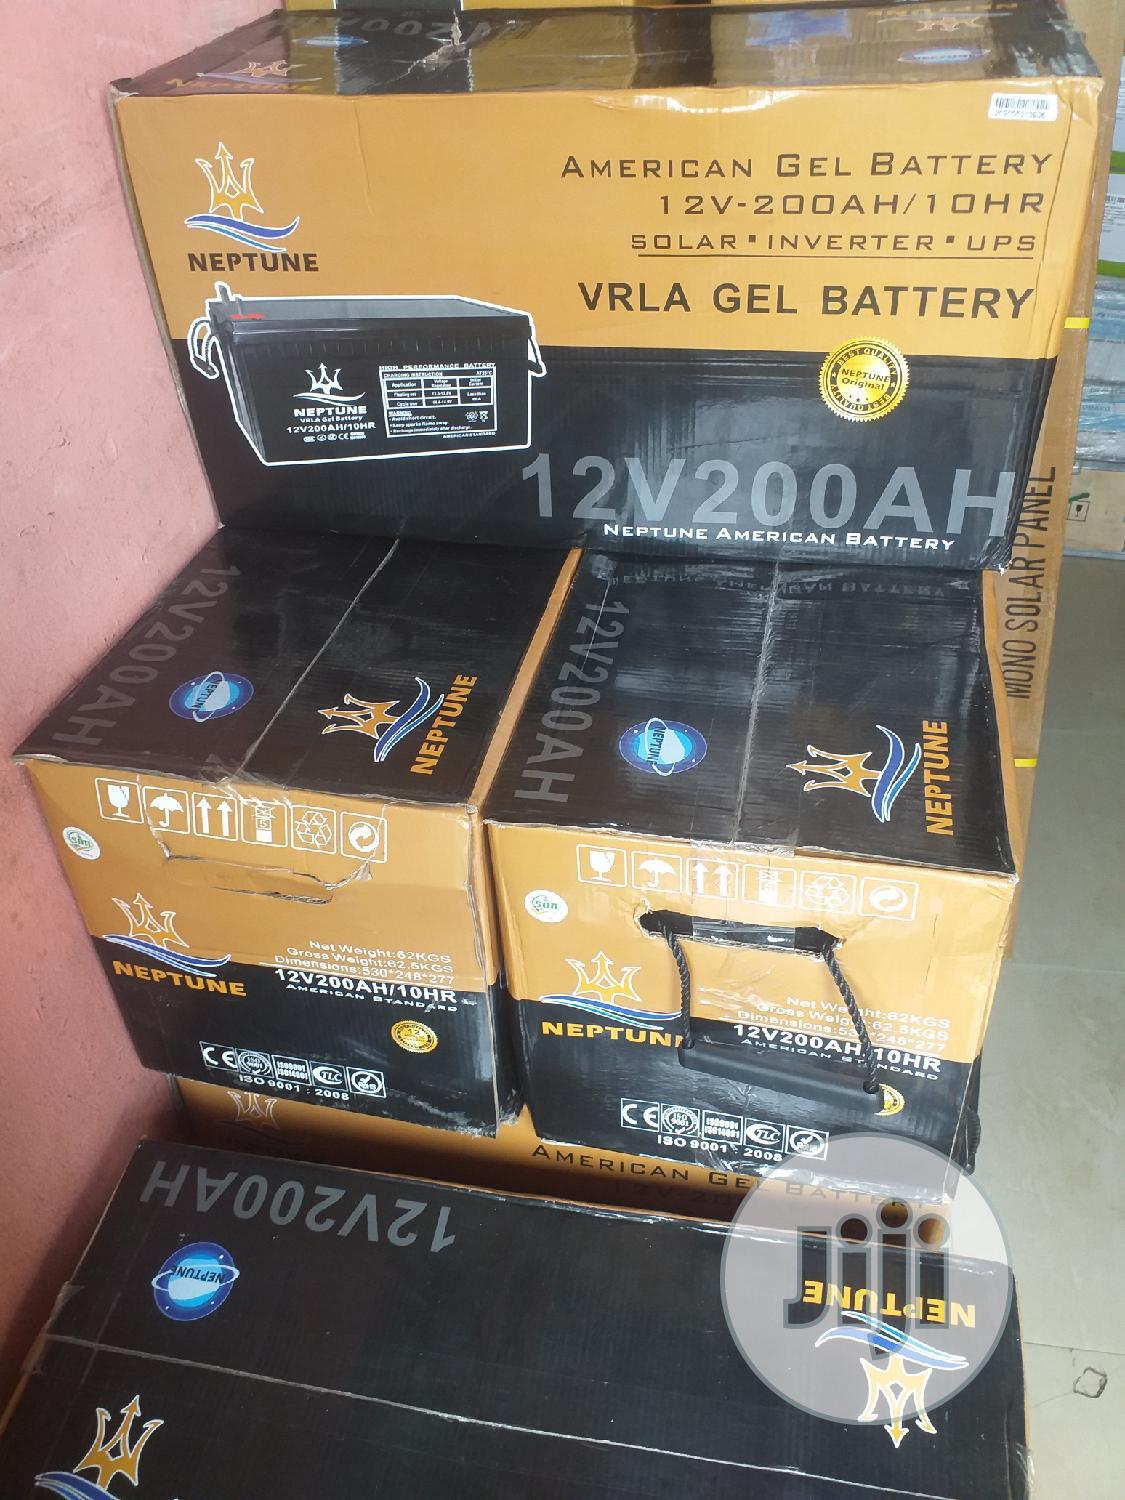 12V 200ah Neptune Gel Battery